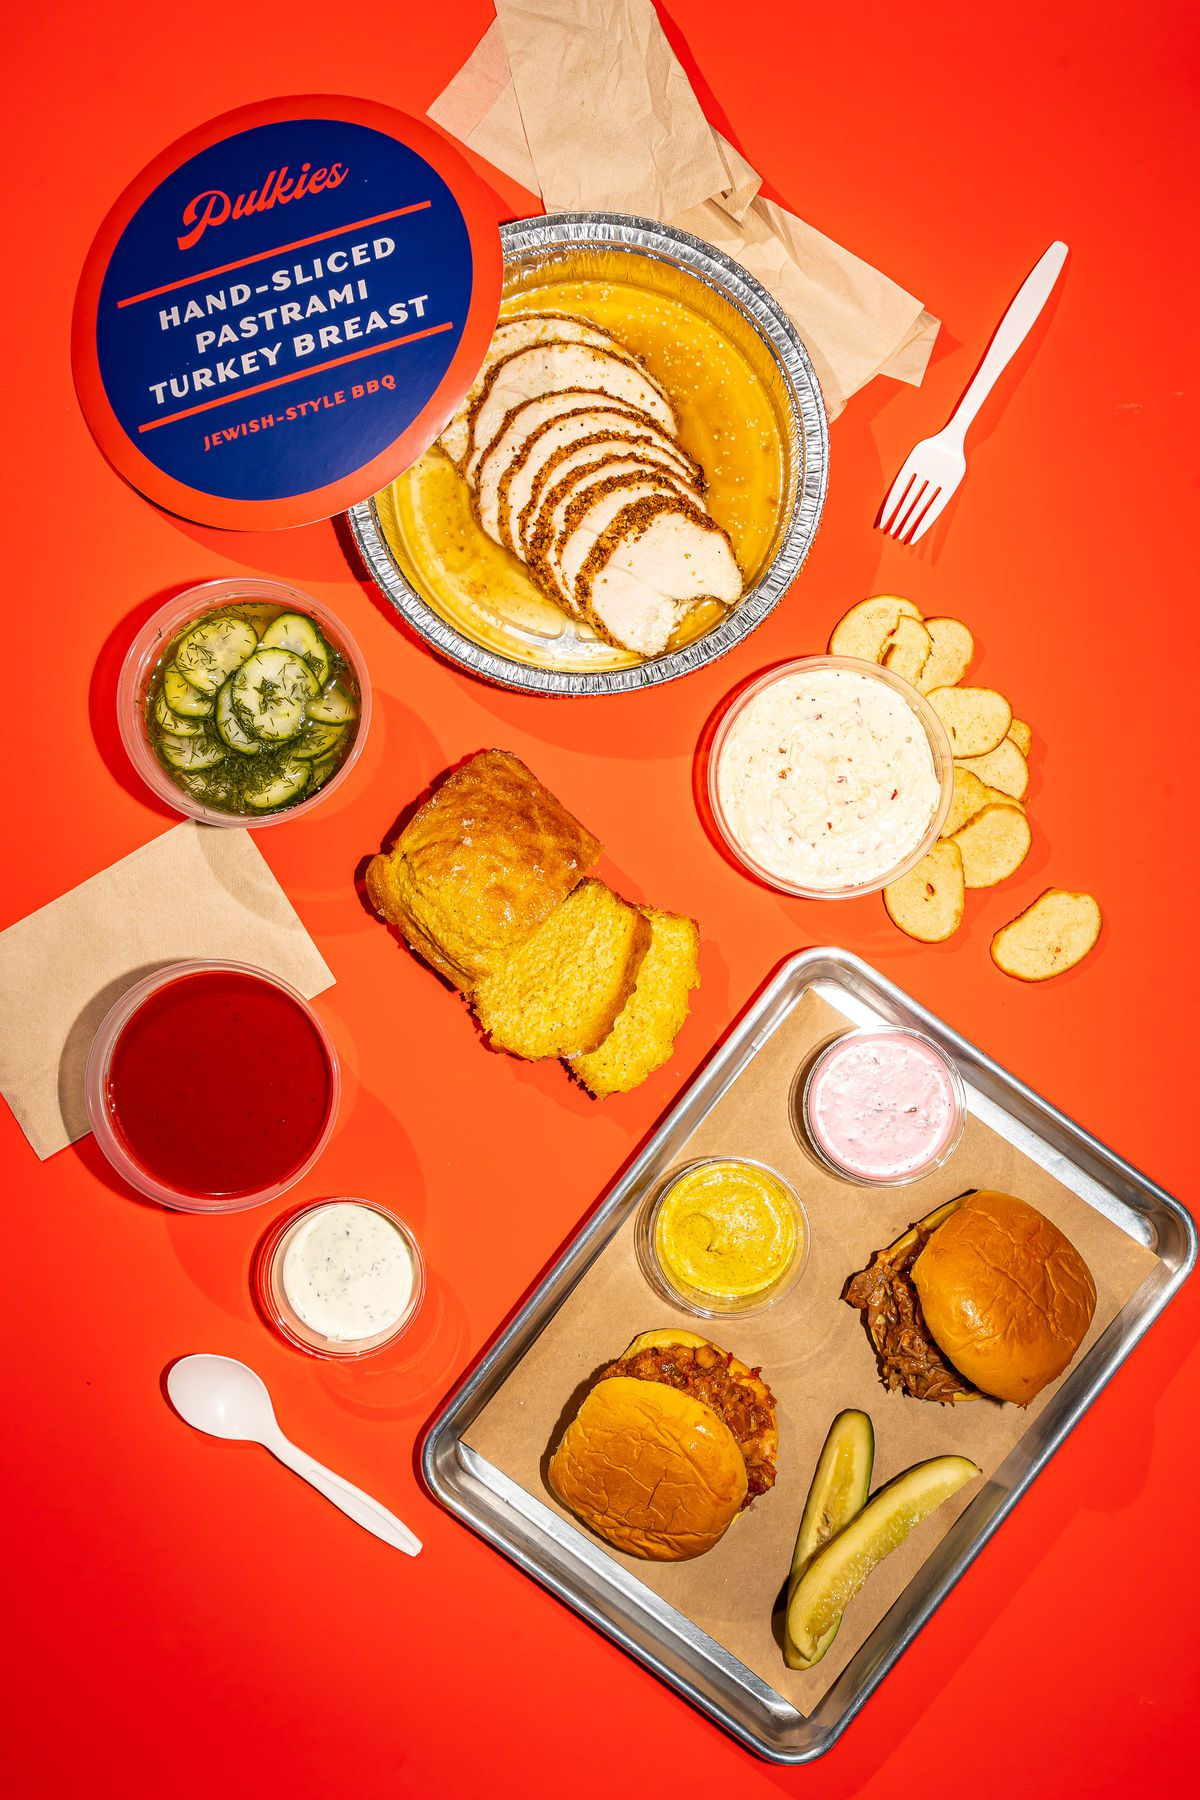 An overhead photograph of a spread of foods, including two pulled turkey sandwiches, plastic to-go containers of dips, sliced breads, pickles, and plastic utensils